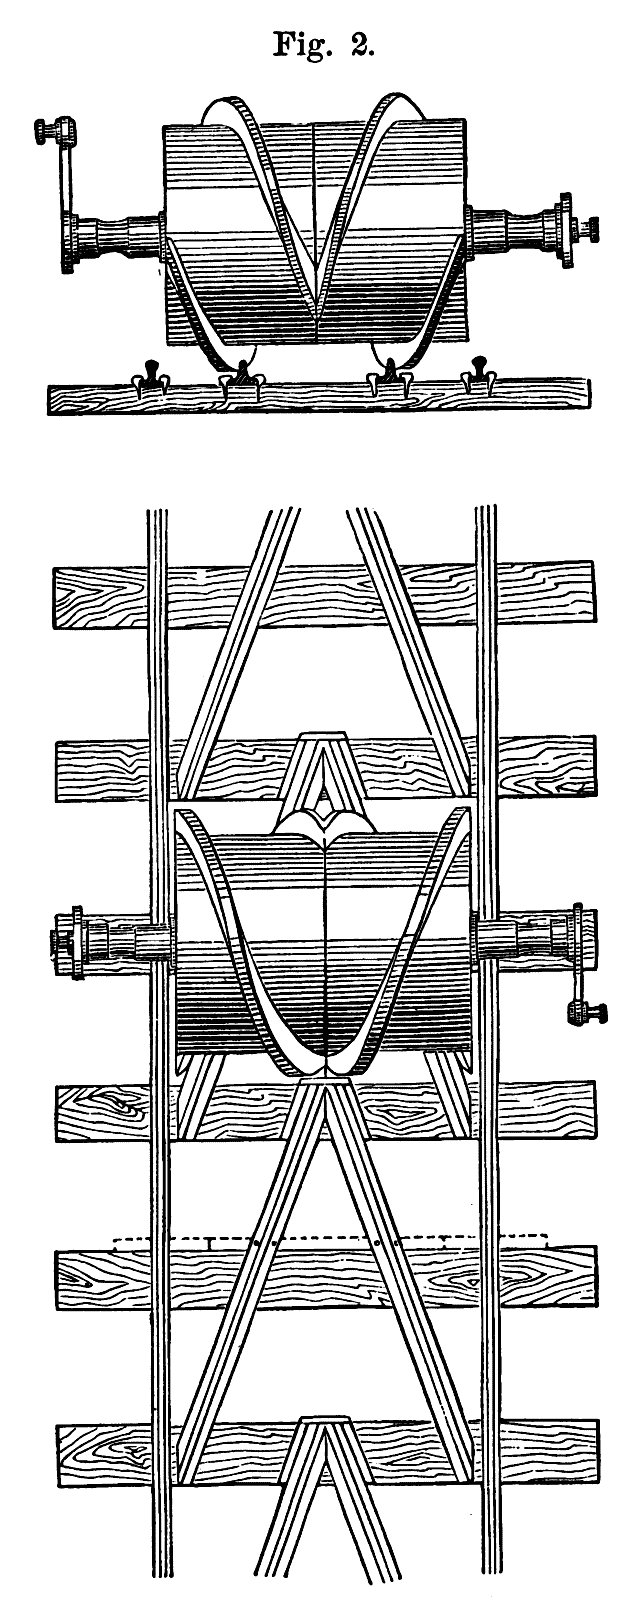 The Project Gutenberg Ebook Of Scientific American Supplement Is A Diagram On How To Print Sheet Kelsey Excelsior Press Fig 2